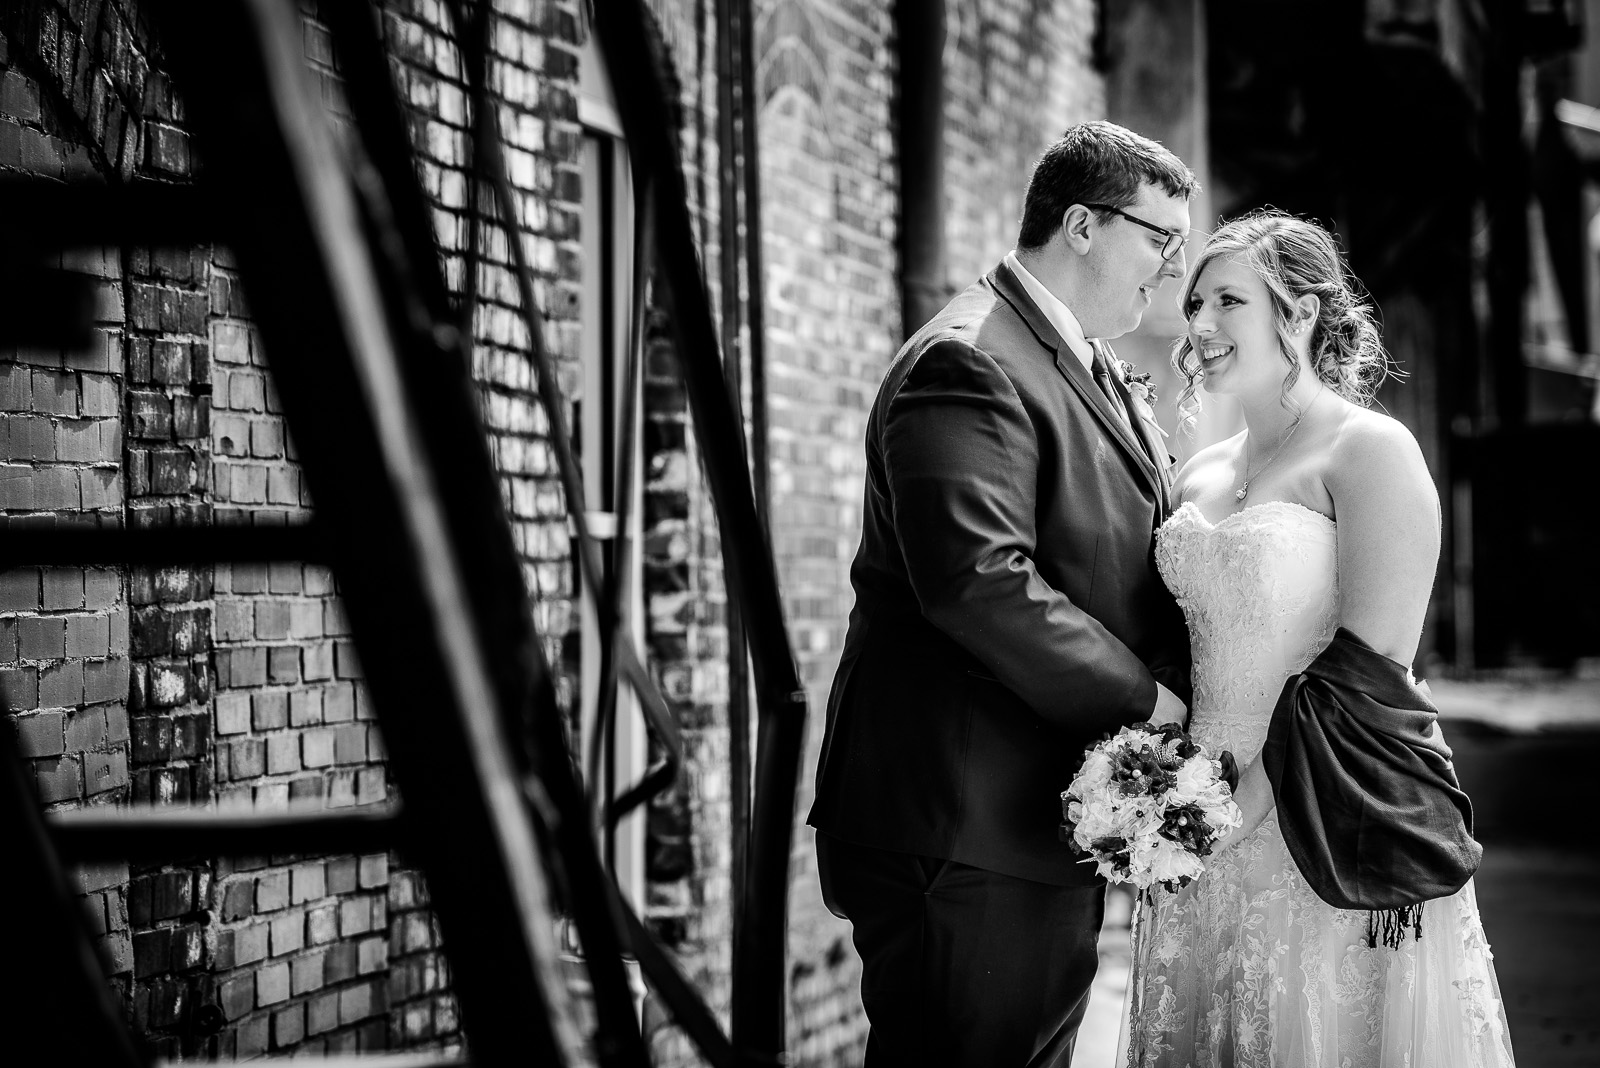 Eric_and_Christy_Photography_Blog_Wedding_Karen_Nick-33